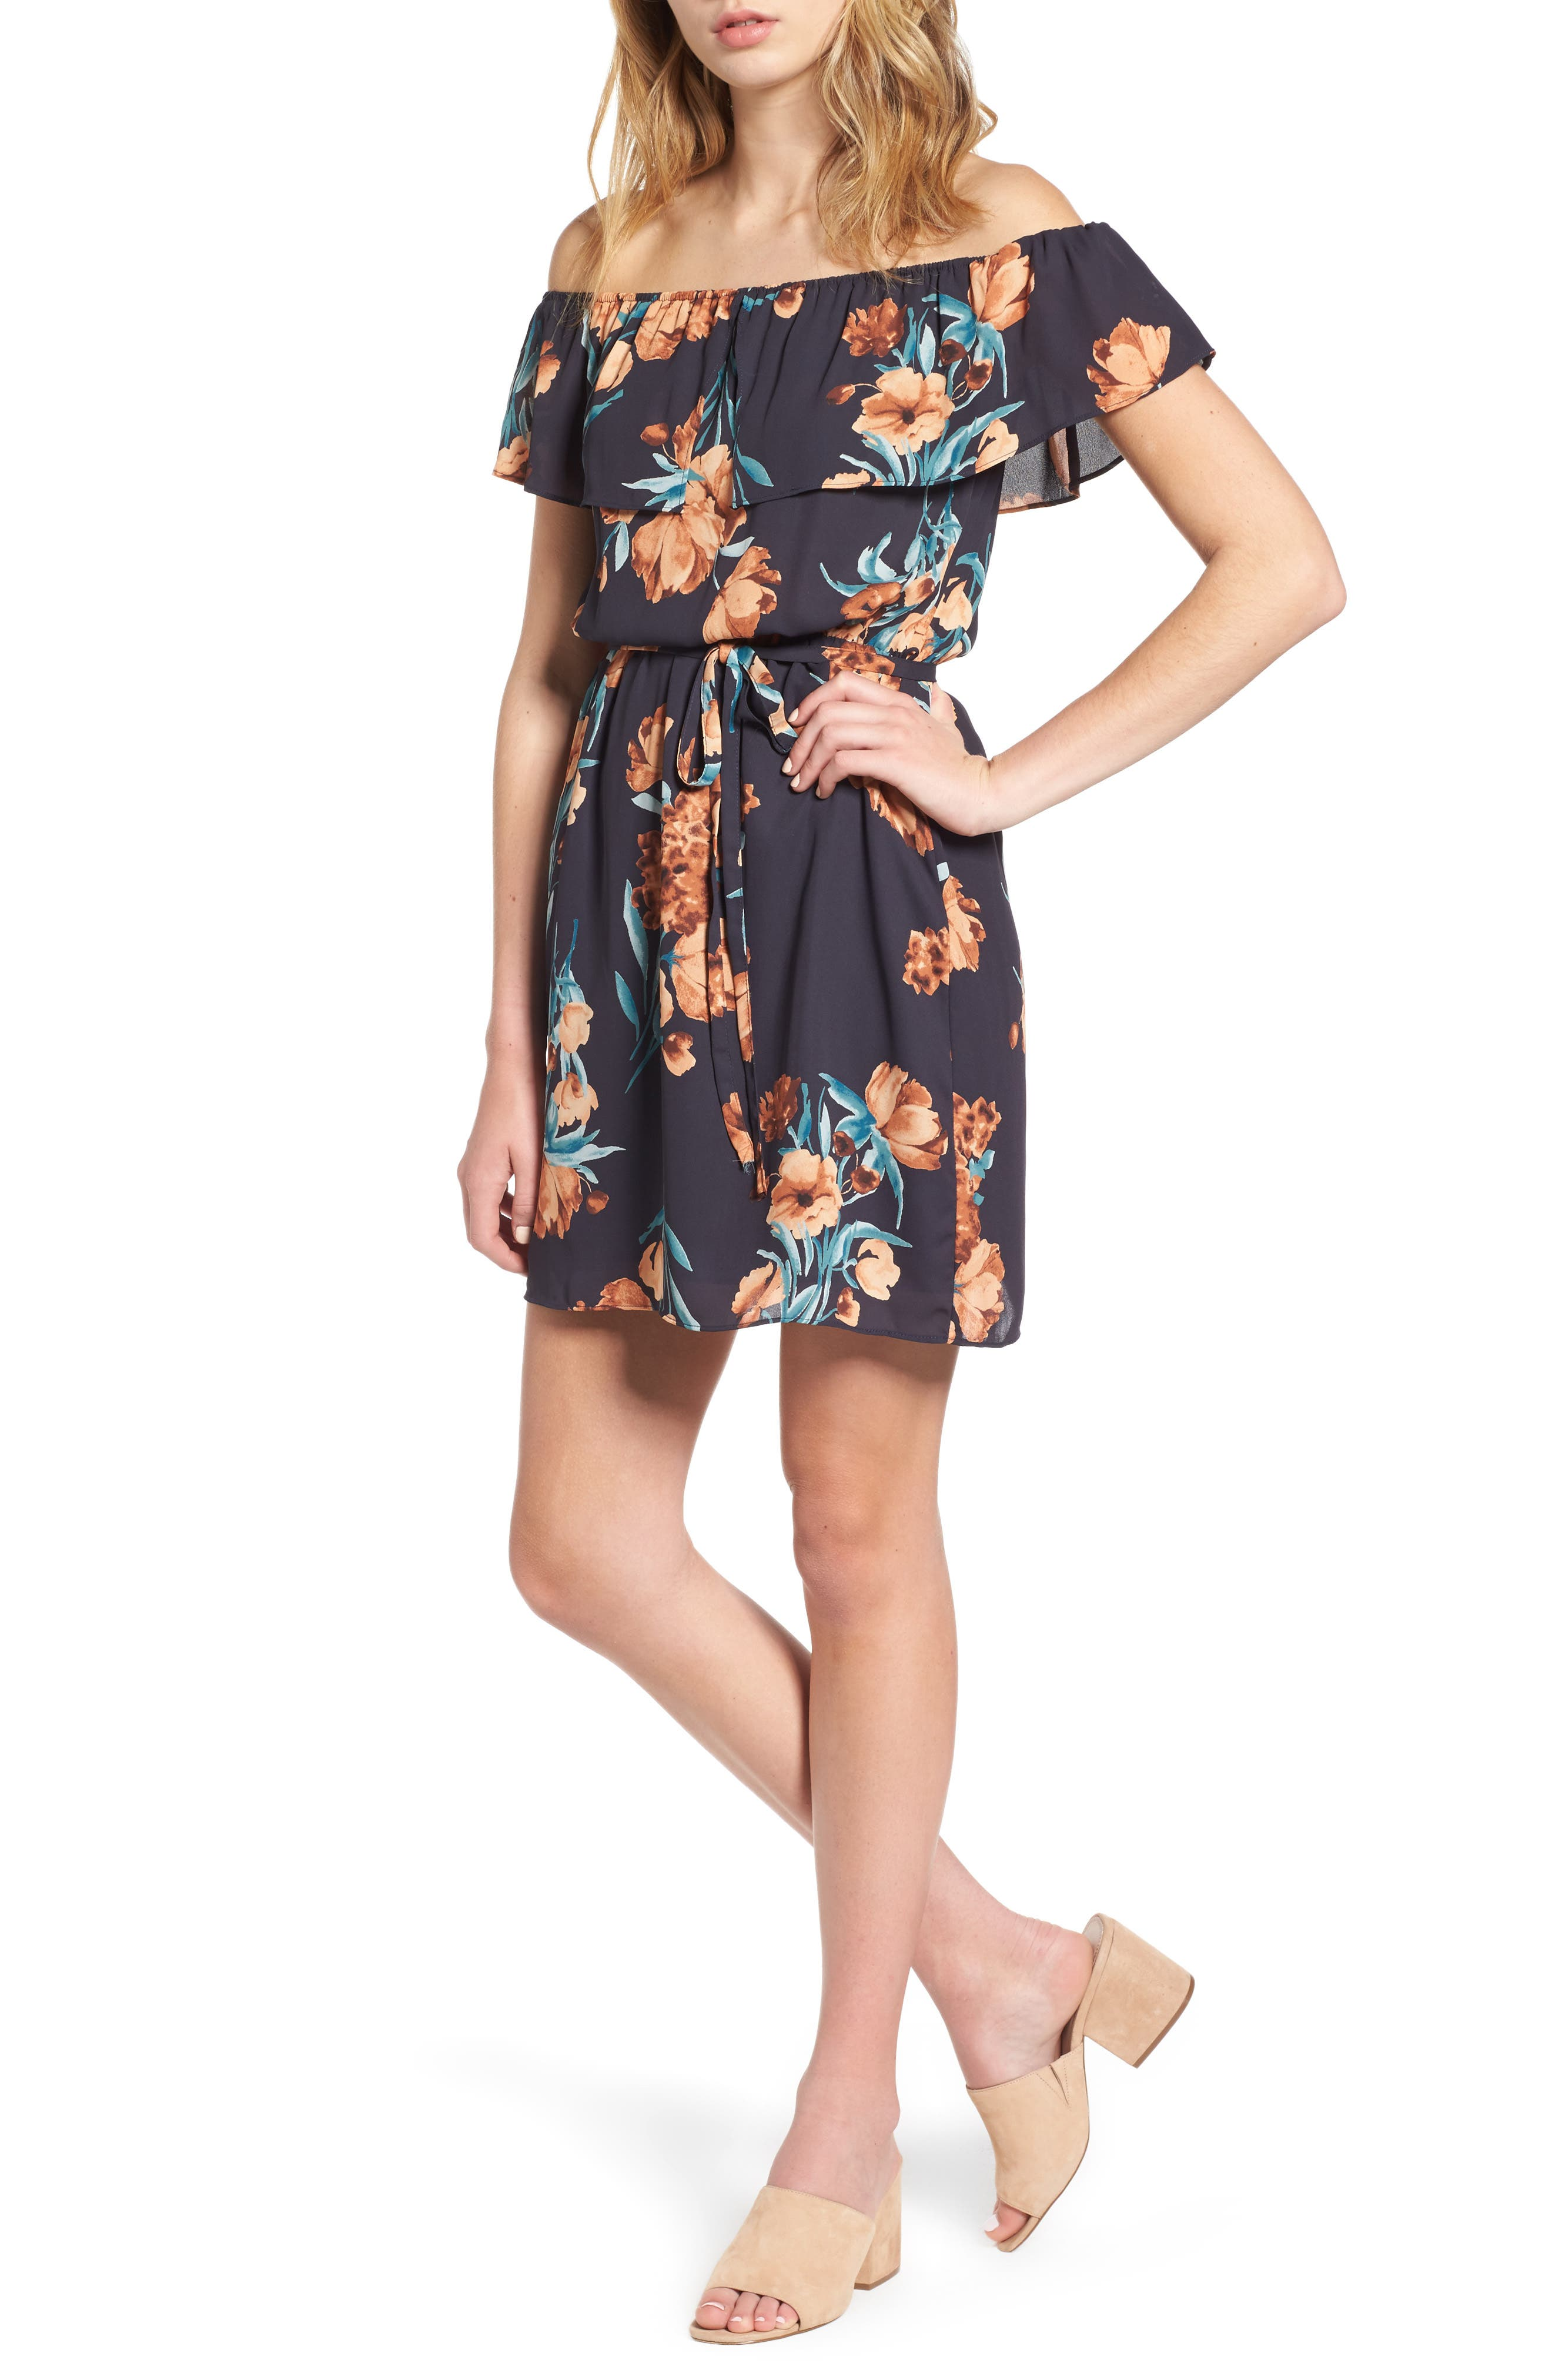 Everly Floral Off the Shoulder Dress